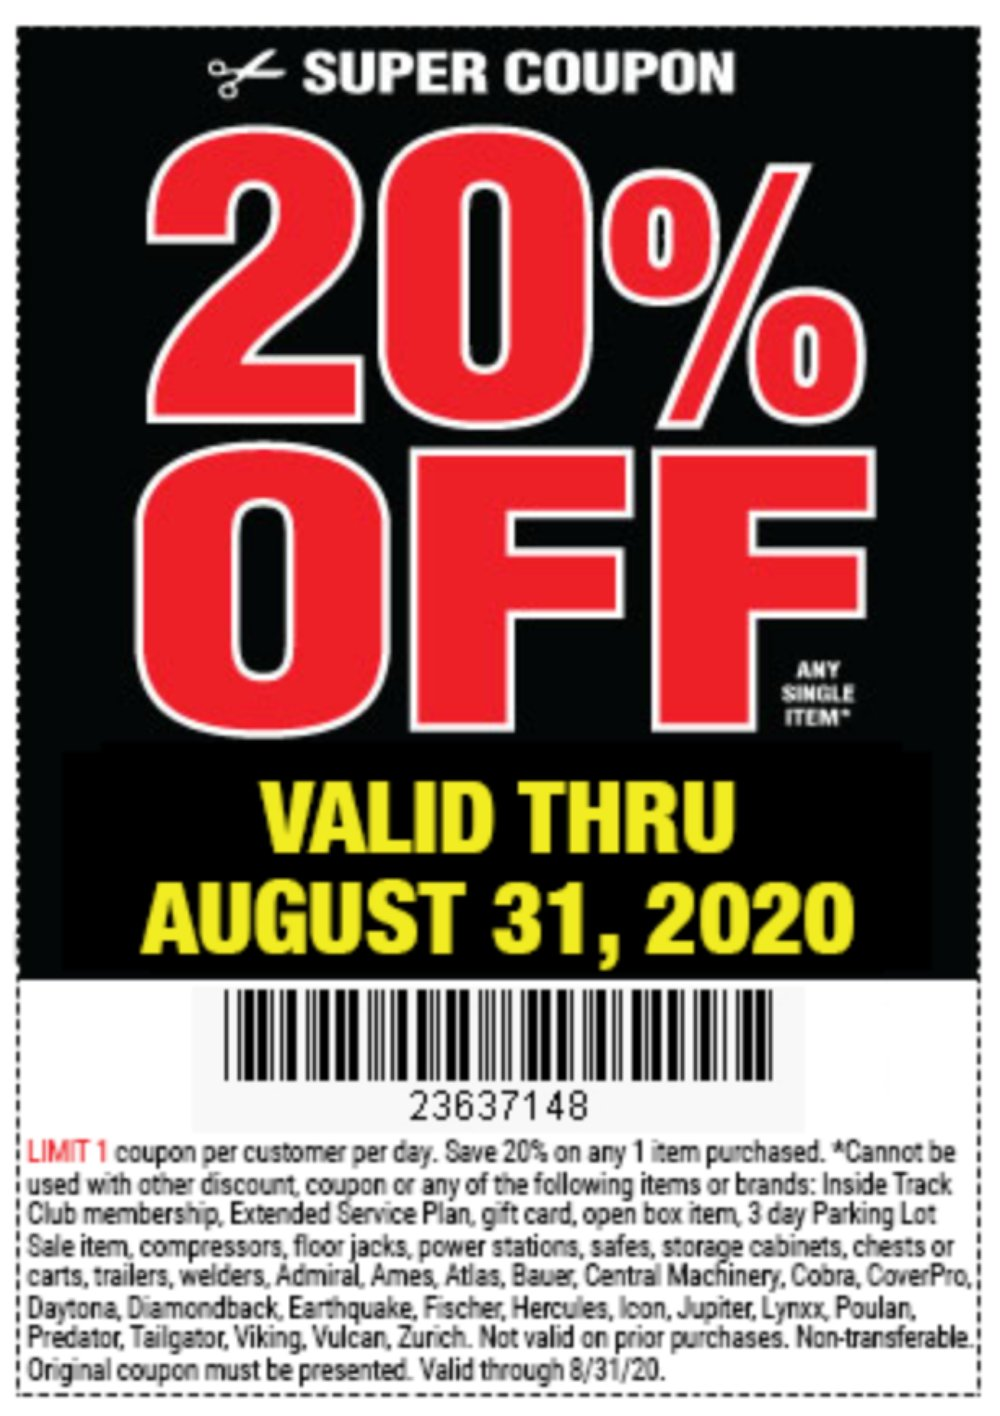 Harbor Freight Coupon, HF Coupons - 20% Off Any Single Item